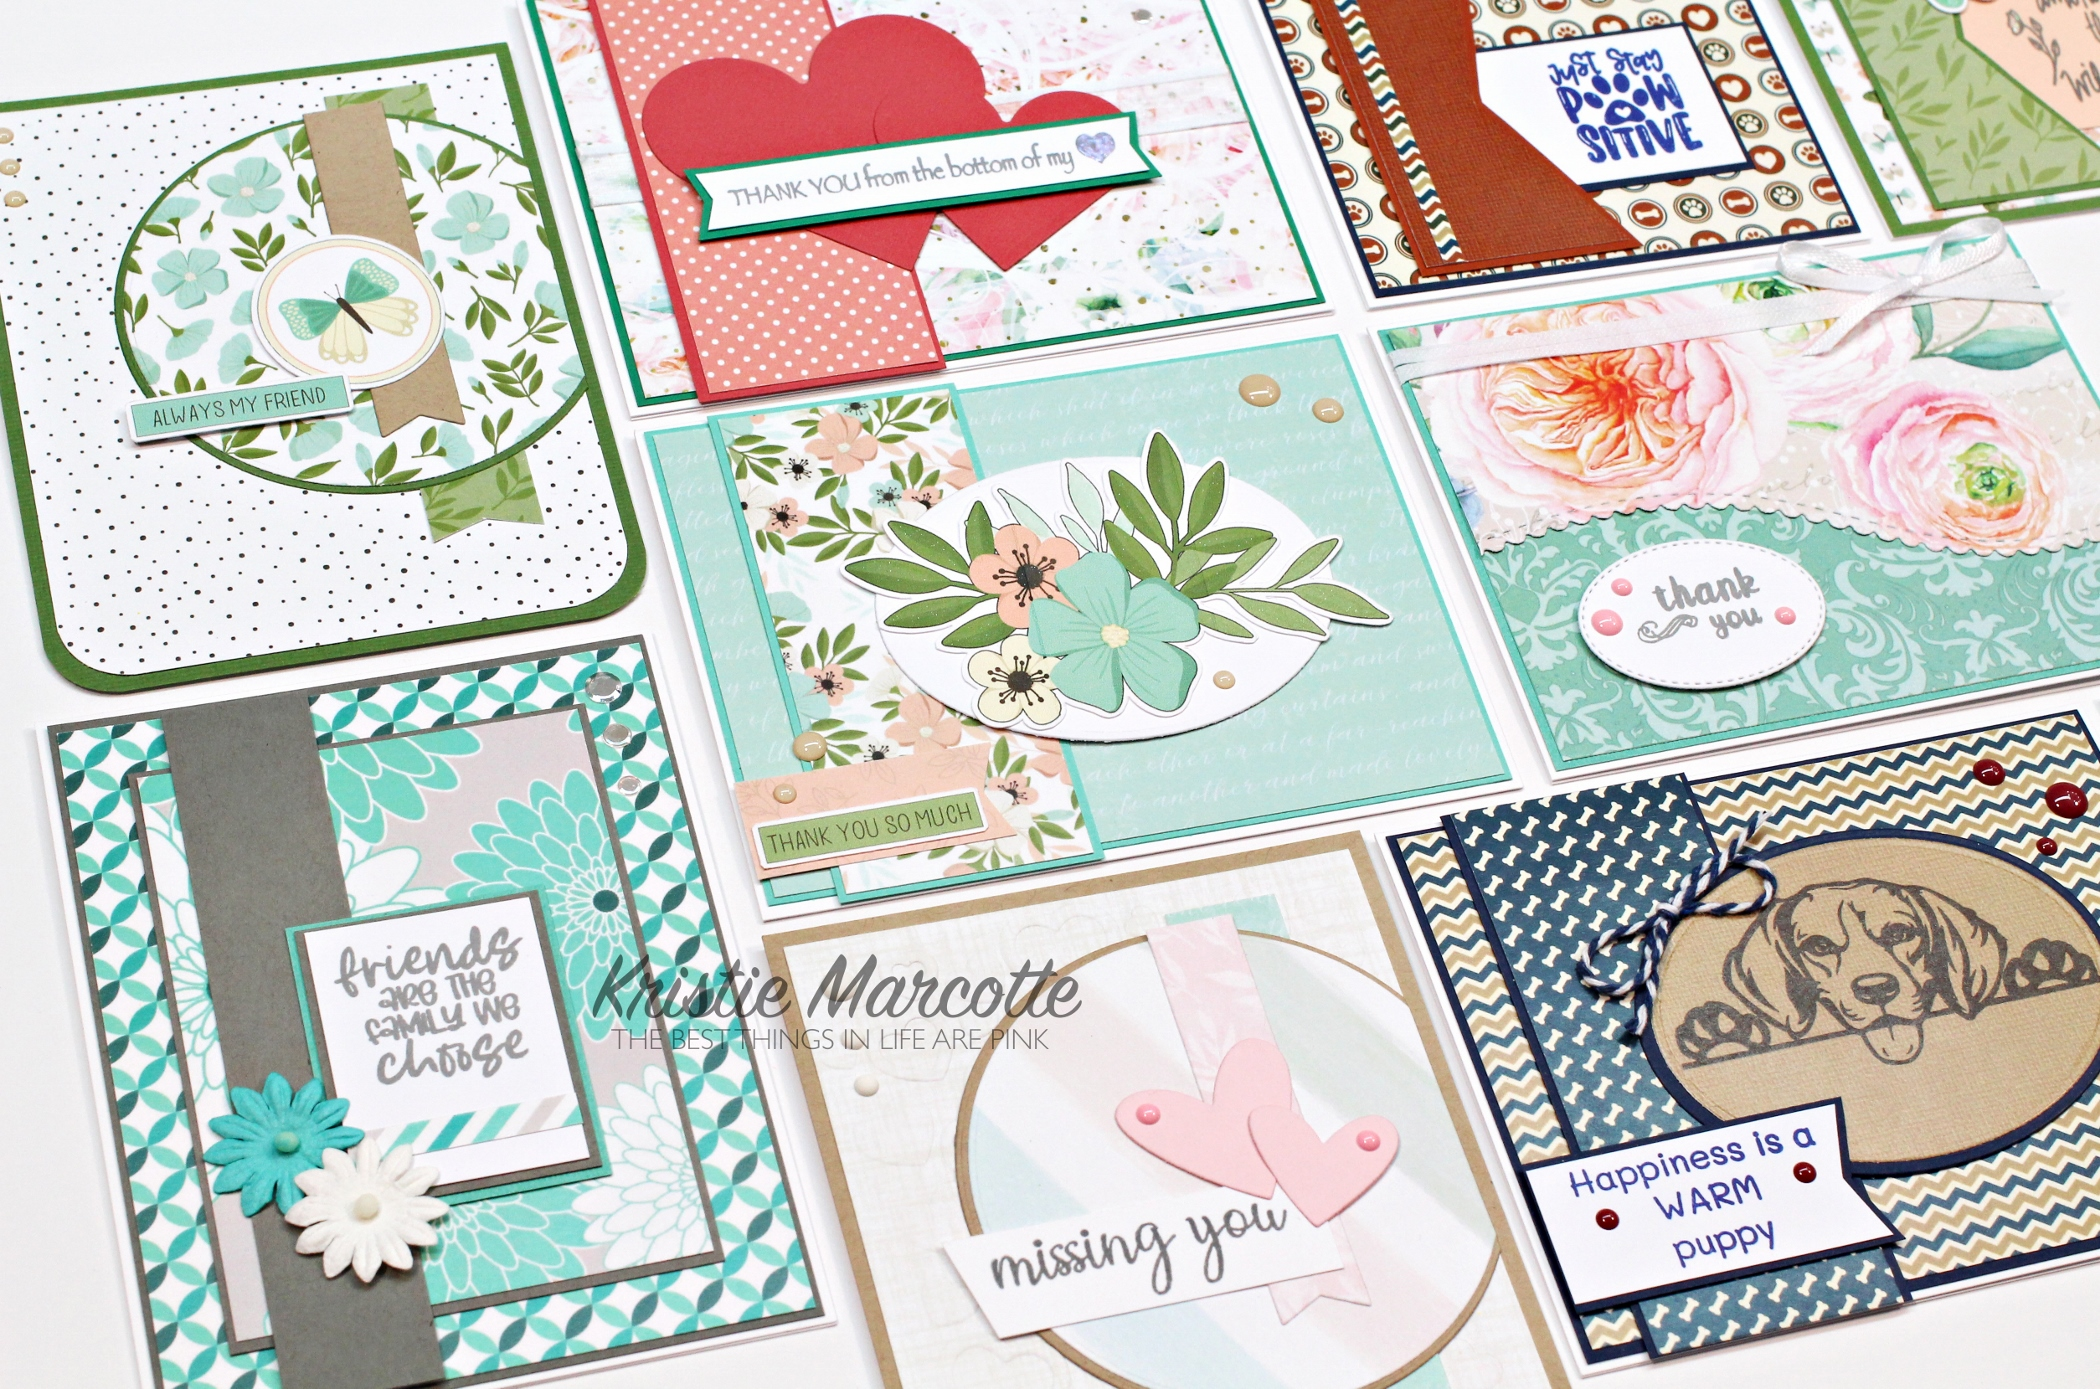 Scrapping For Less – November kit – 10 Cards 1 Kit